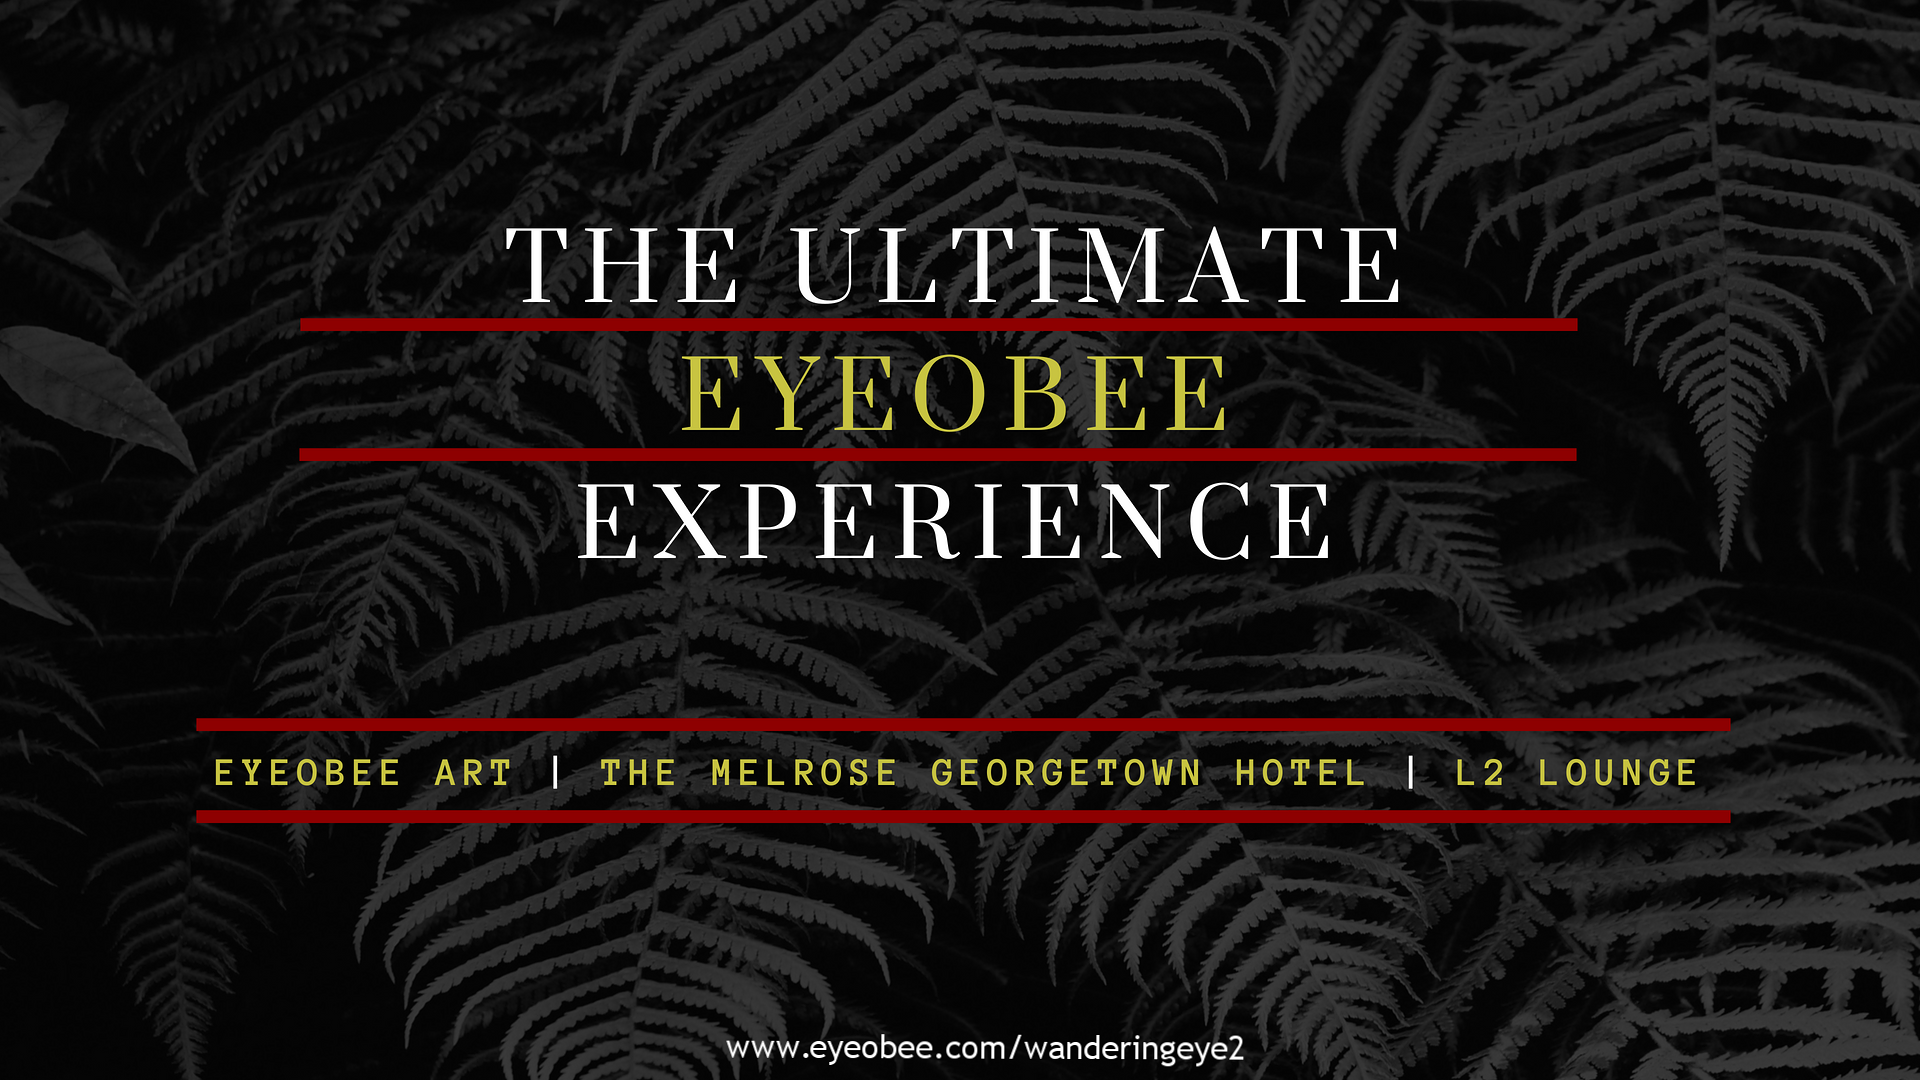 THE ULTIMATE EYEOBEE EXPERIENCE EYEOBEEART THE WANDERING EYE THE MELROSE GEORGETOWN HOTEL L2 LOUNGE GEORGETOWN DC